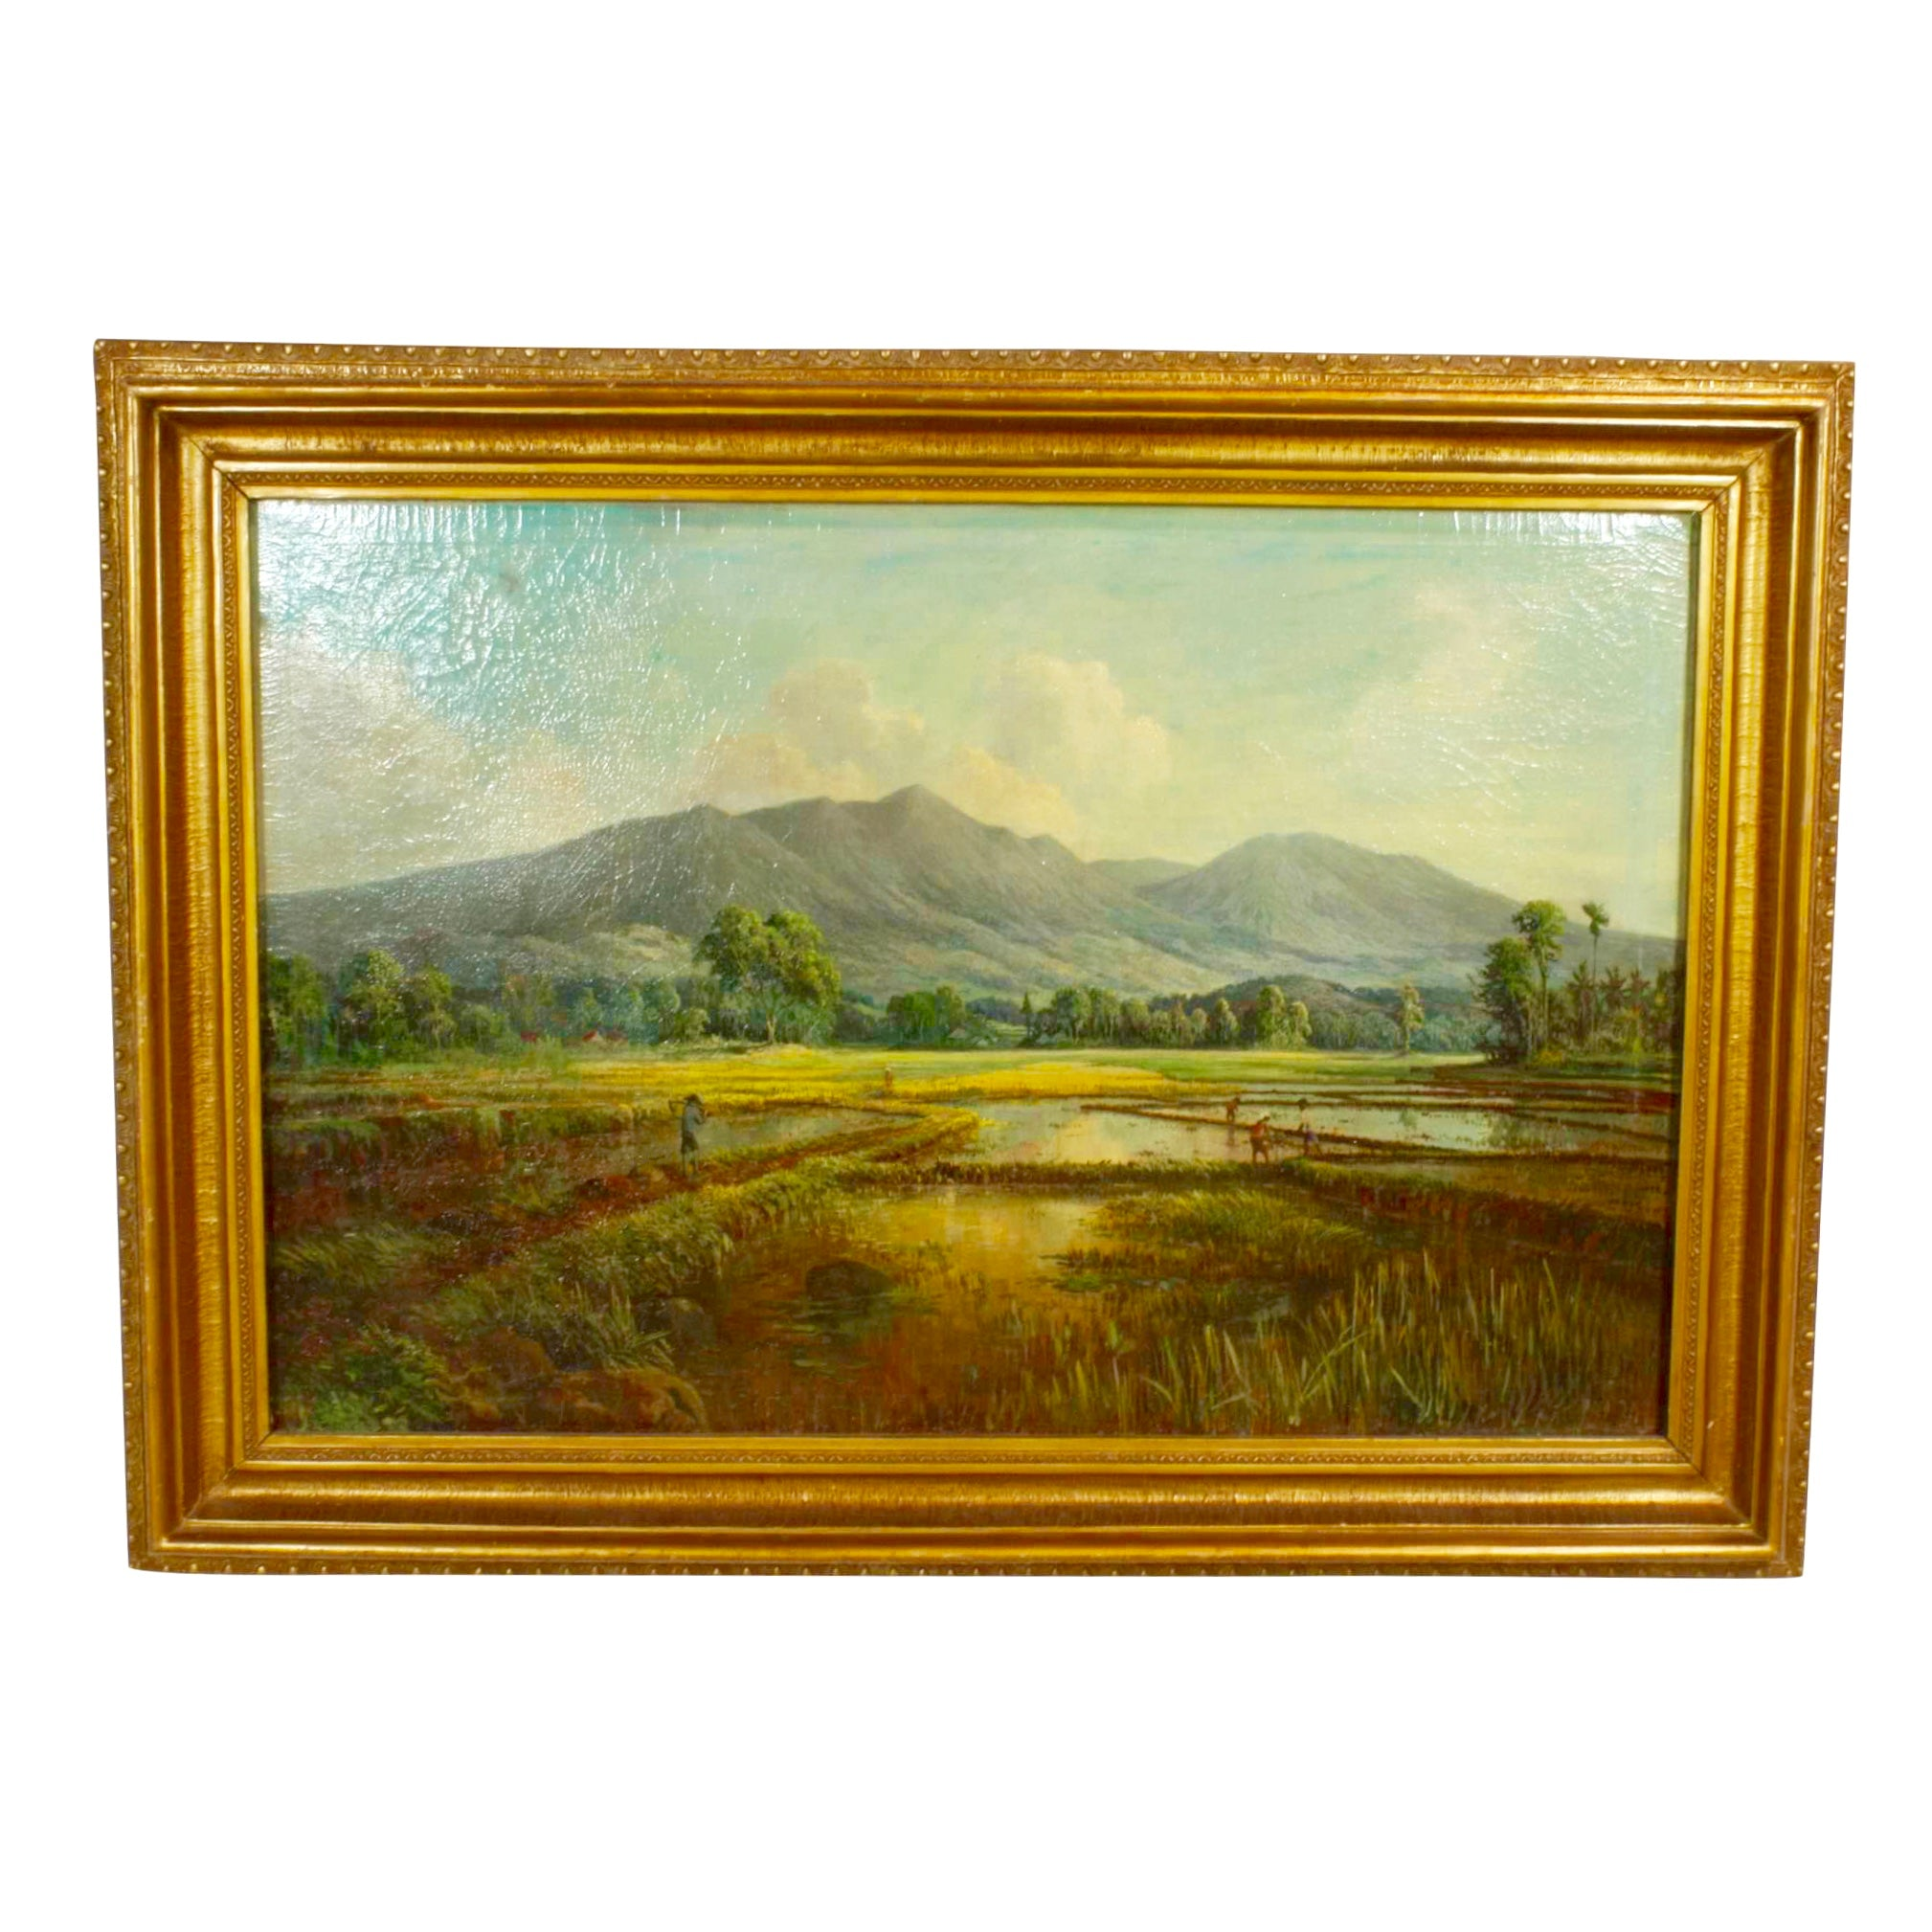 Mountains and Rice Paddies Oil Painting